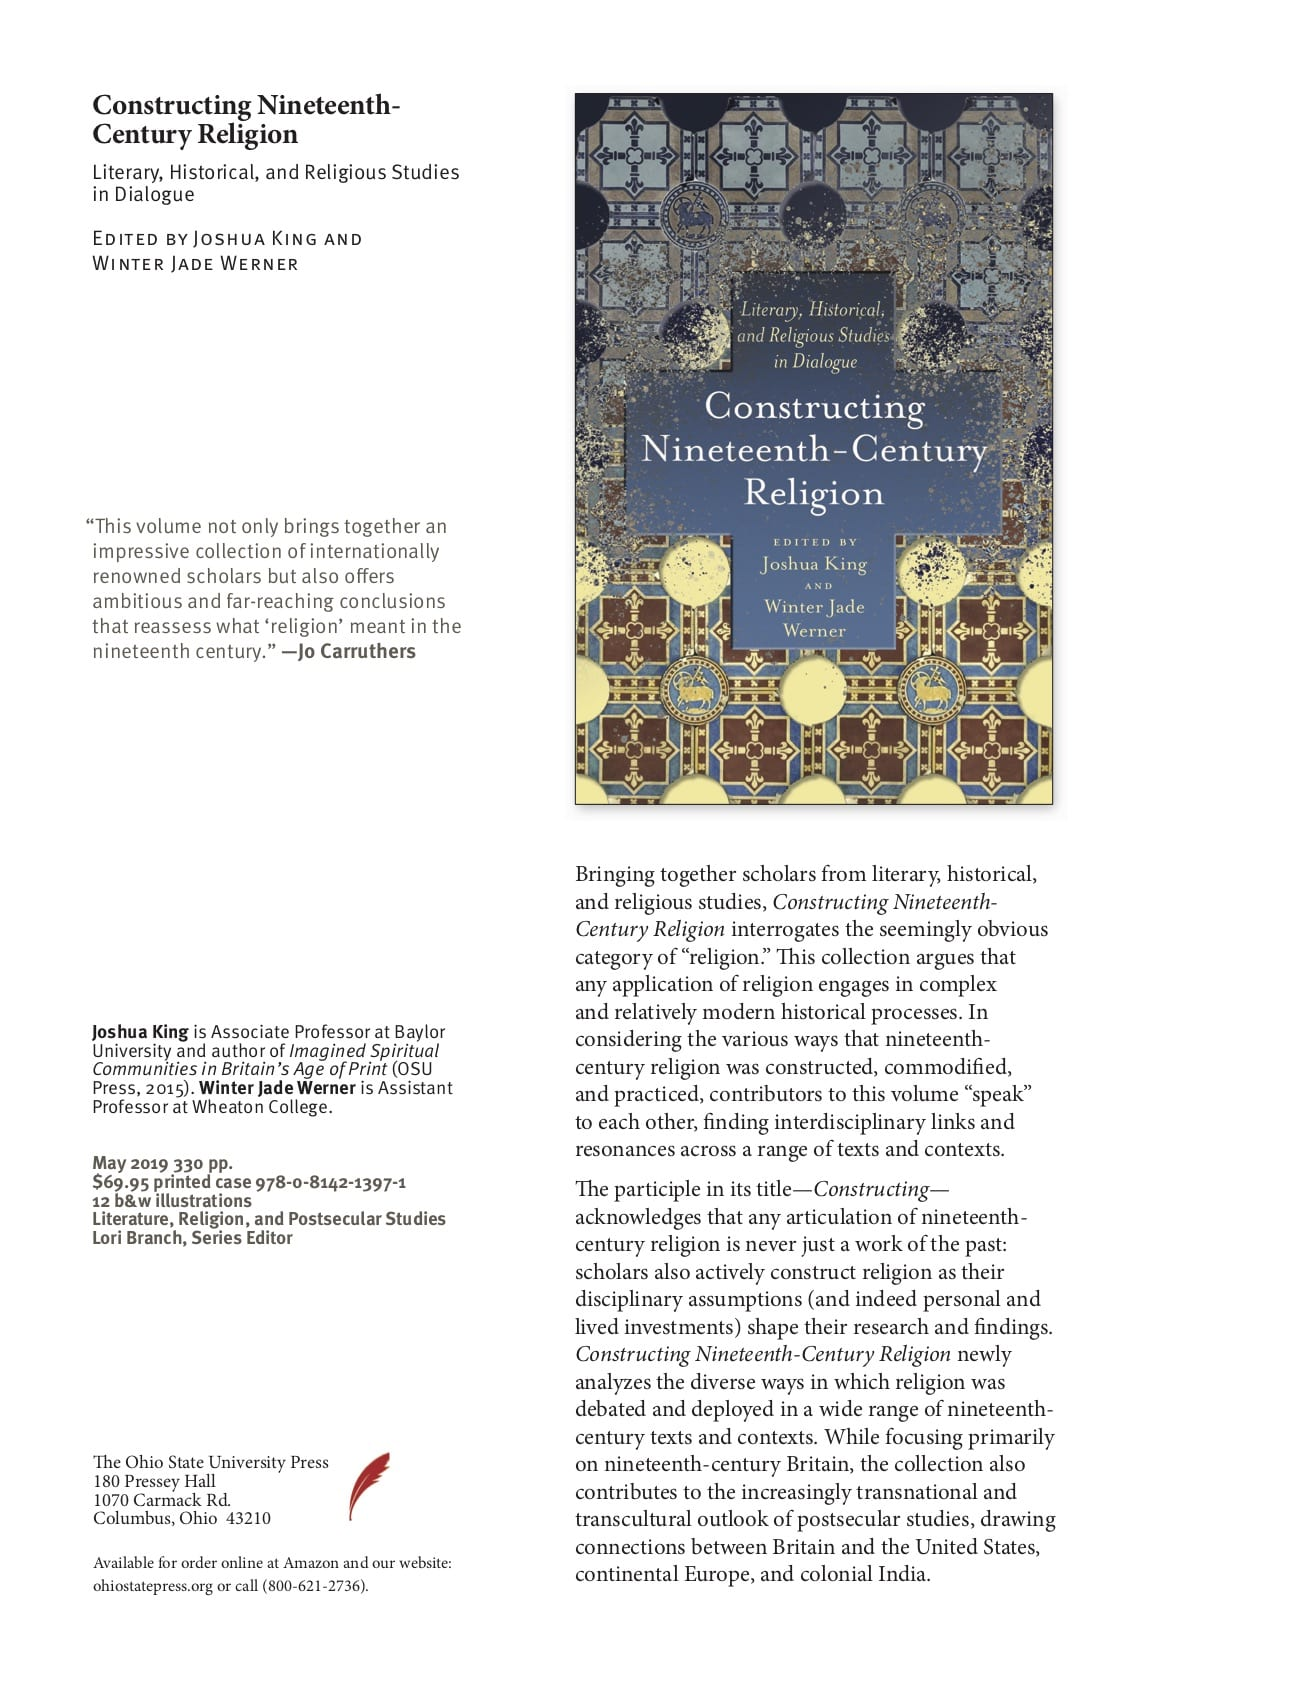 Flyer describing Joshua King's and Winter Jade Werner's newly released edited collection: Constructing Nineteenth-Century Religion